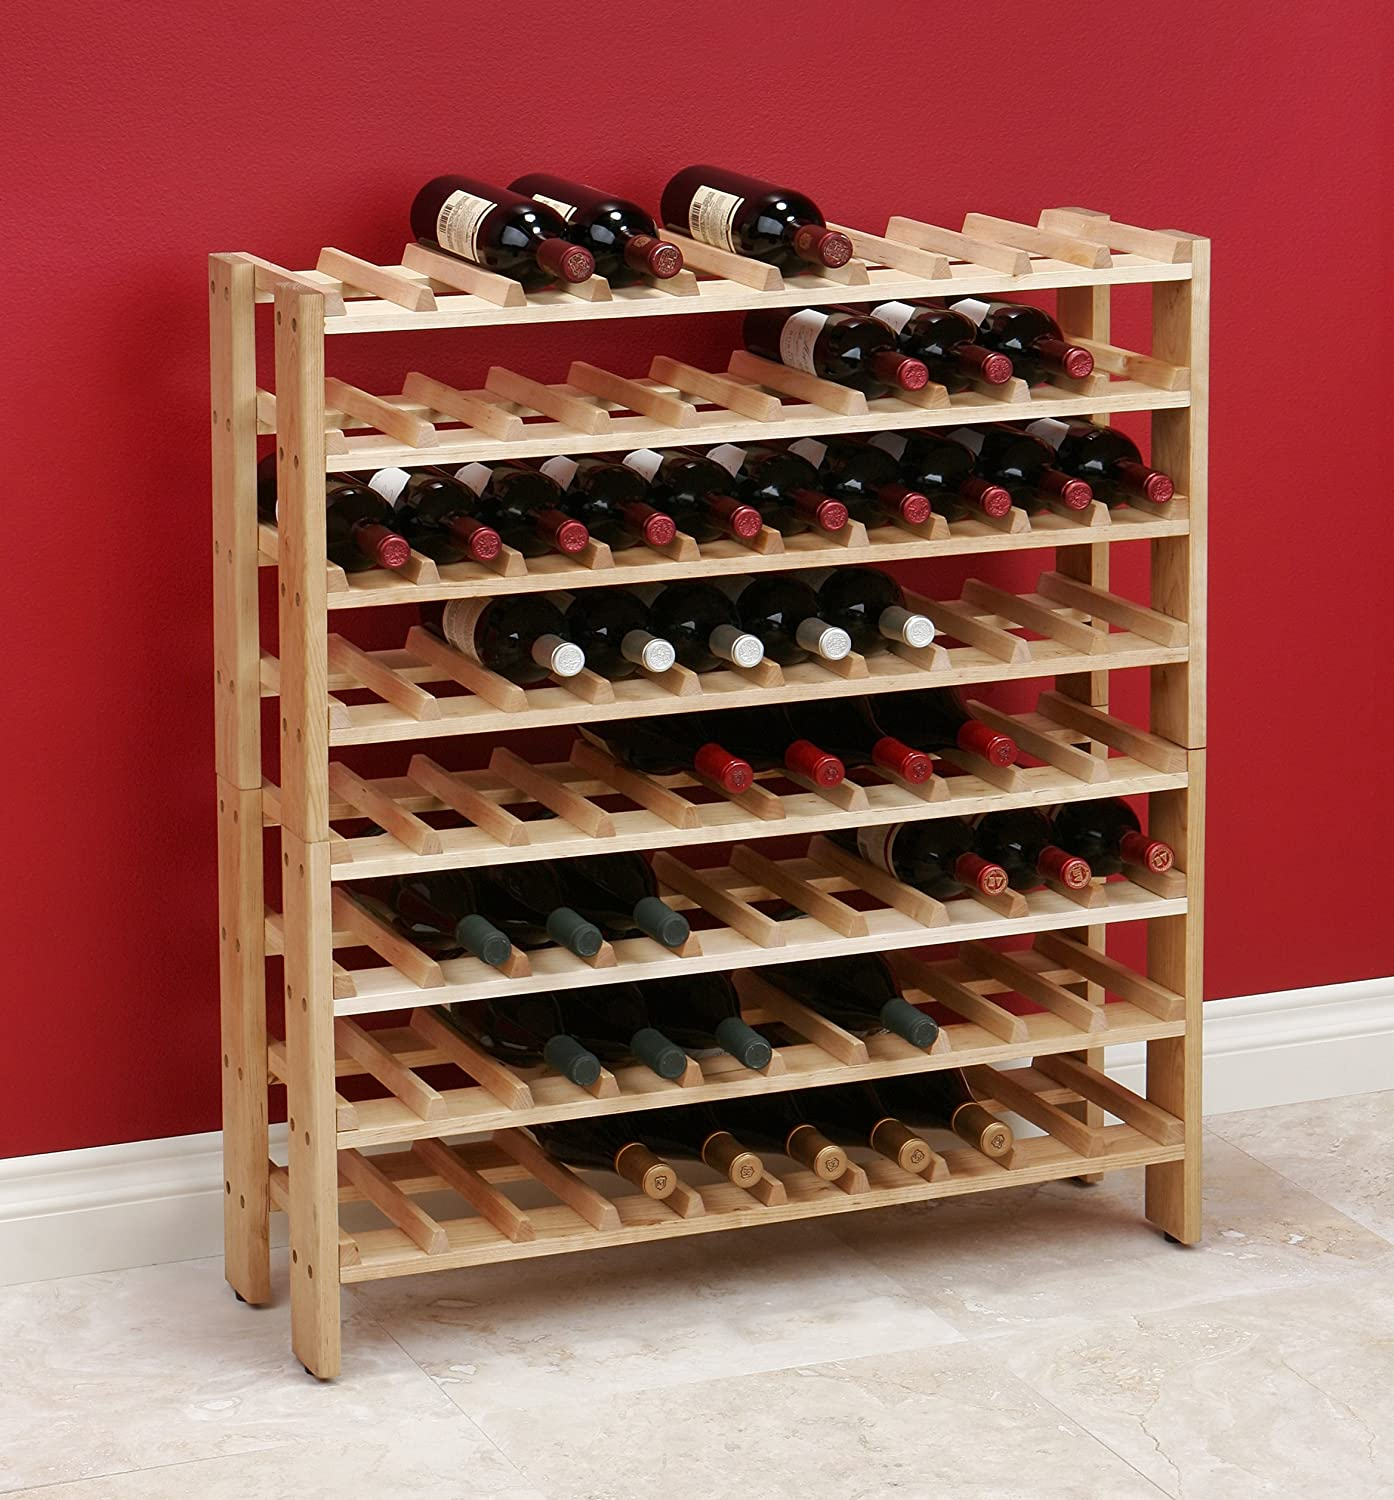 Classics Wooden Wine Racks Plans Furniture Holder 40